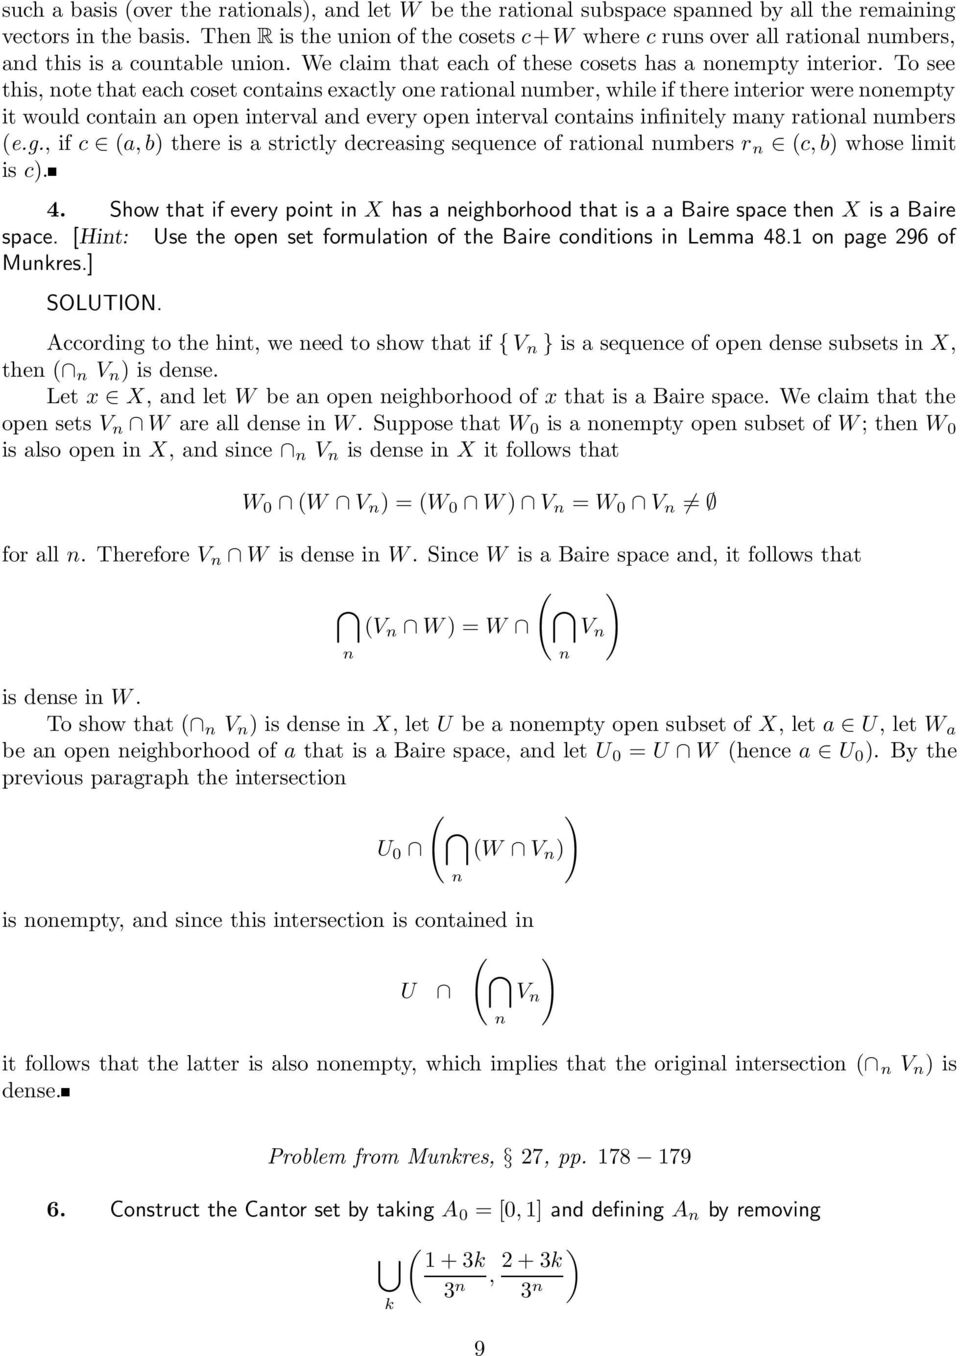 Solutions To Exercises For Mathematics 205a Part 3 Spaces With Special Properties Pdf Free Download